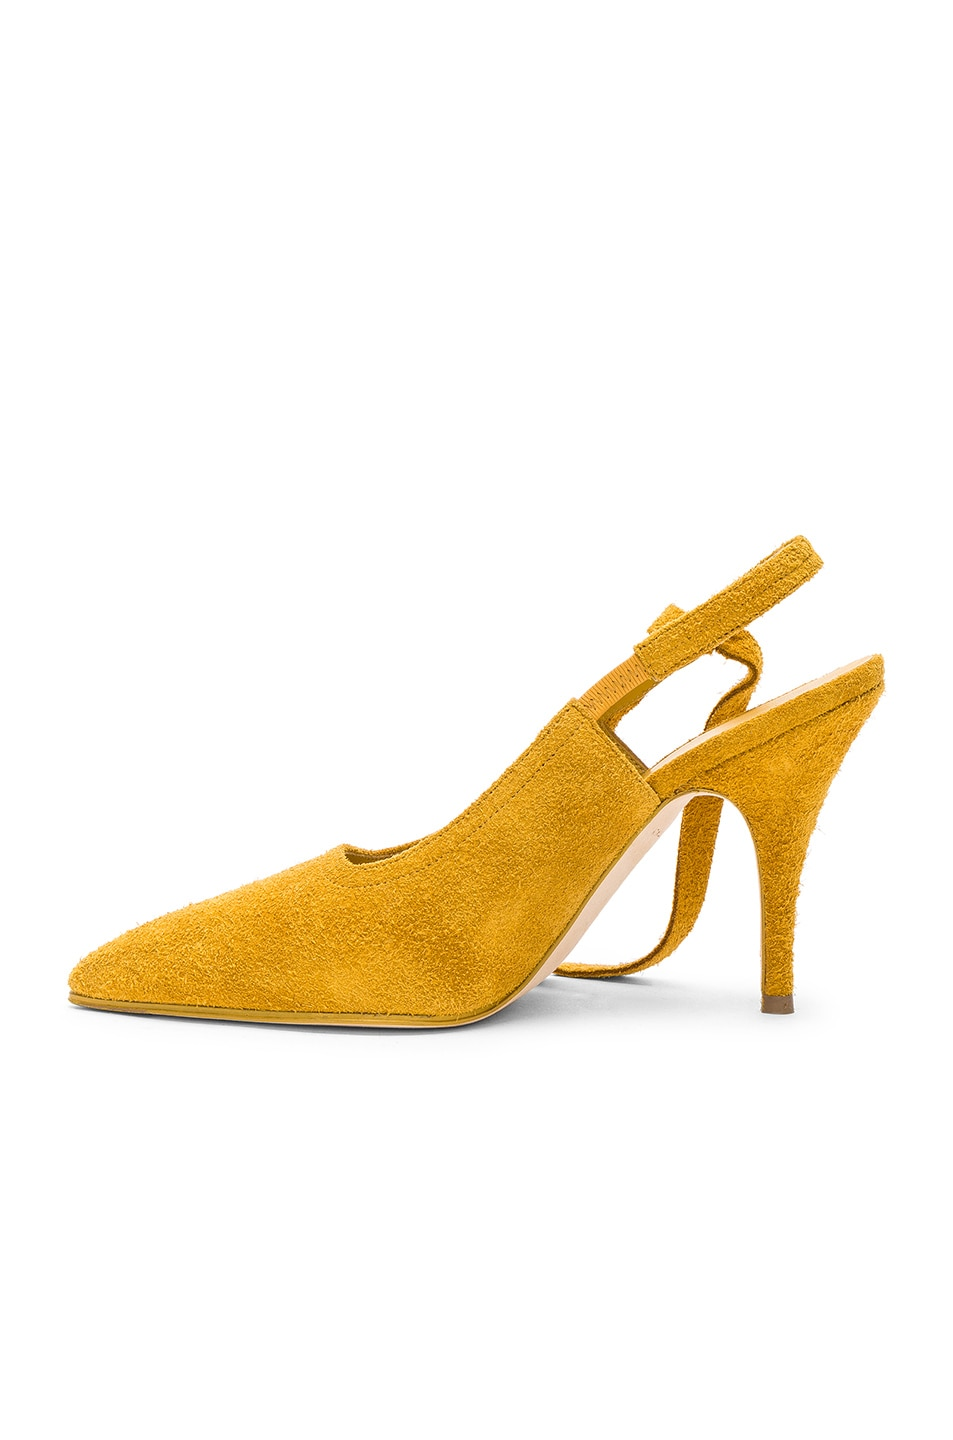 Image 5 of Victoria Beckham Suede Dorothy Sling Back Pumps in Yellow